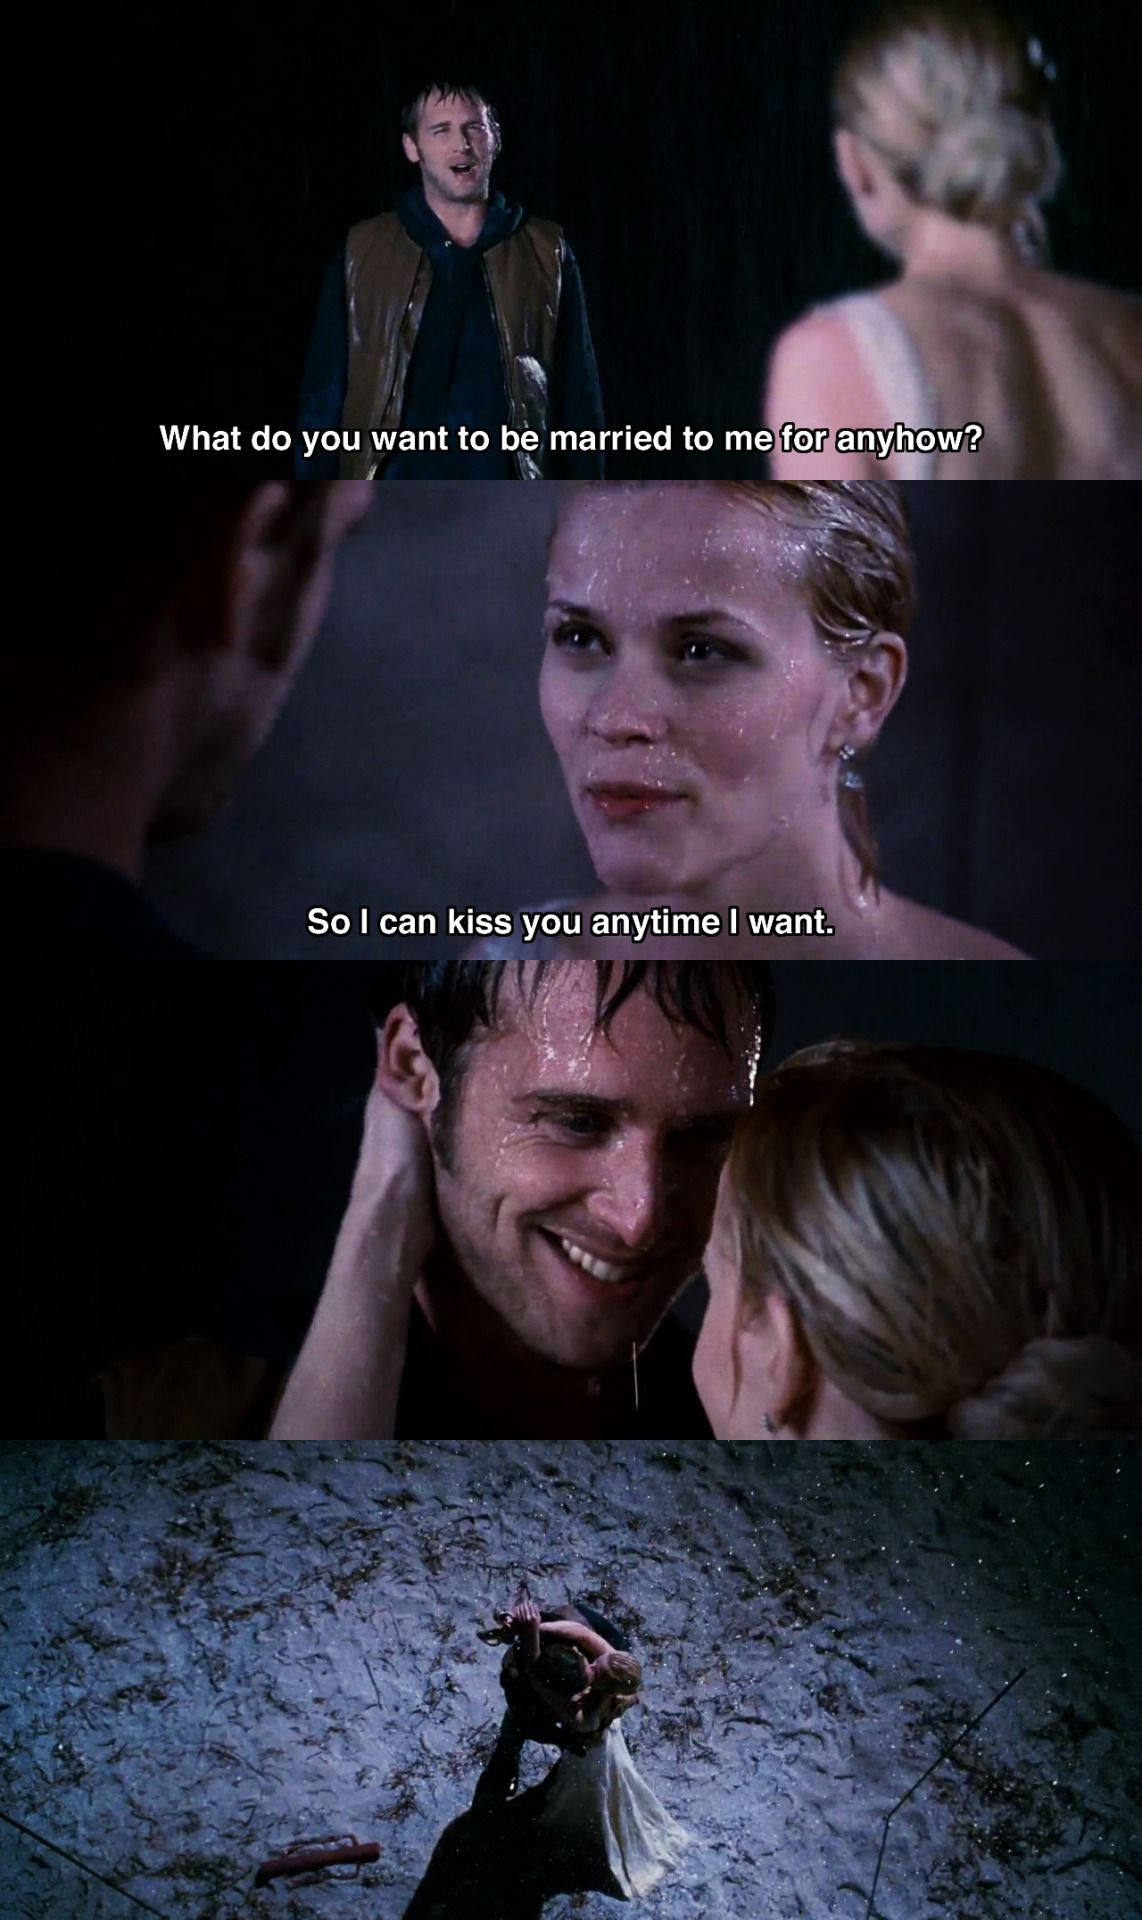 So I Can Kiss You Sweet Home Alabama 2002 Movie Quotes